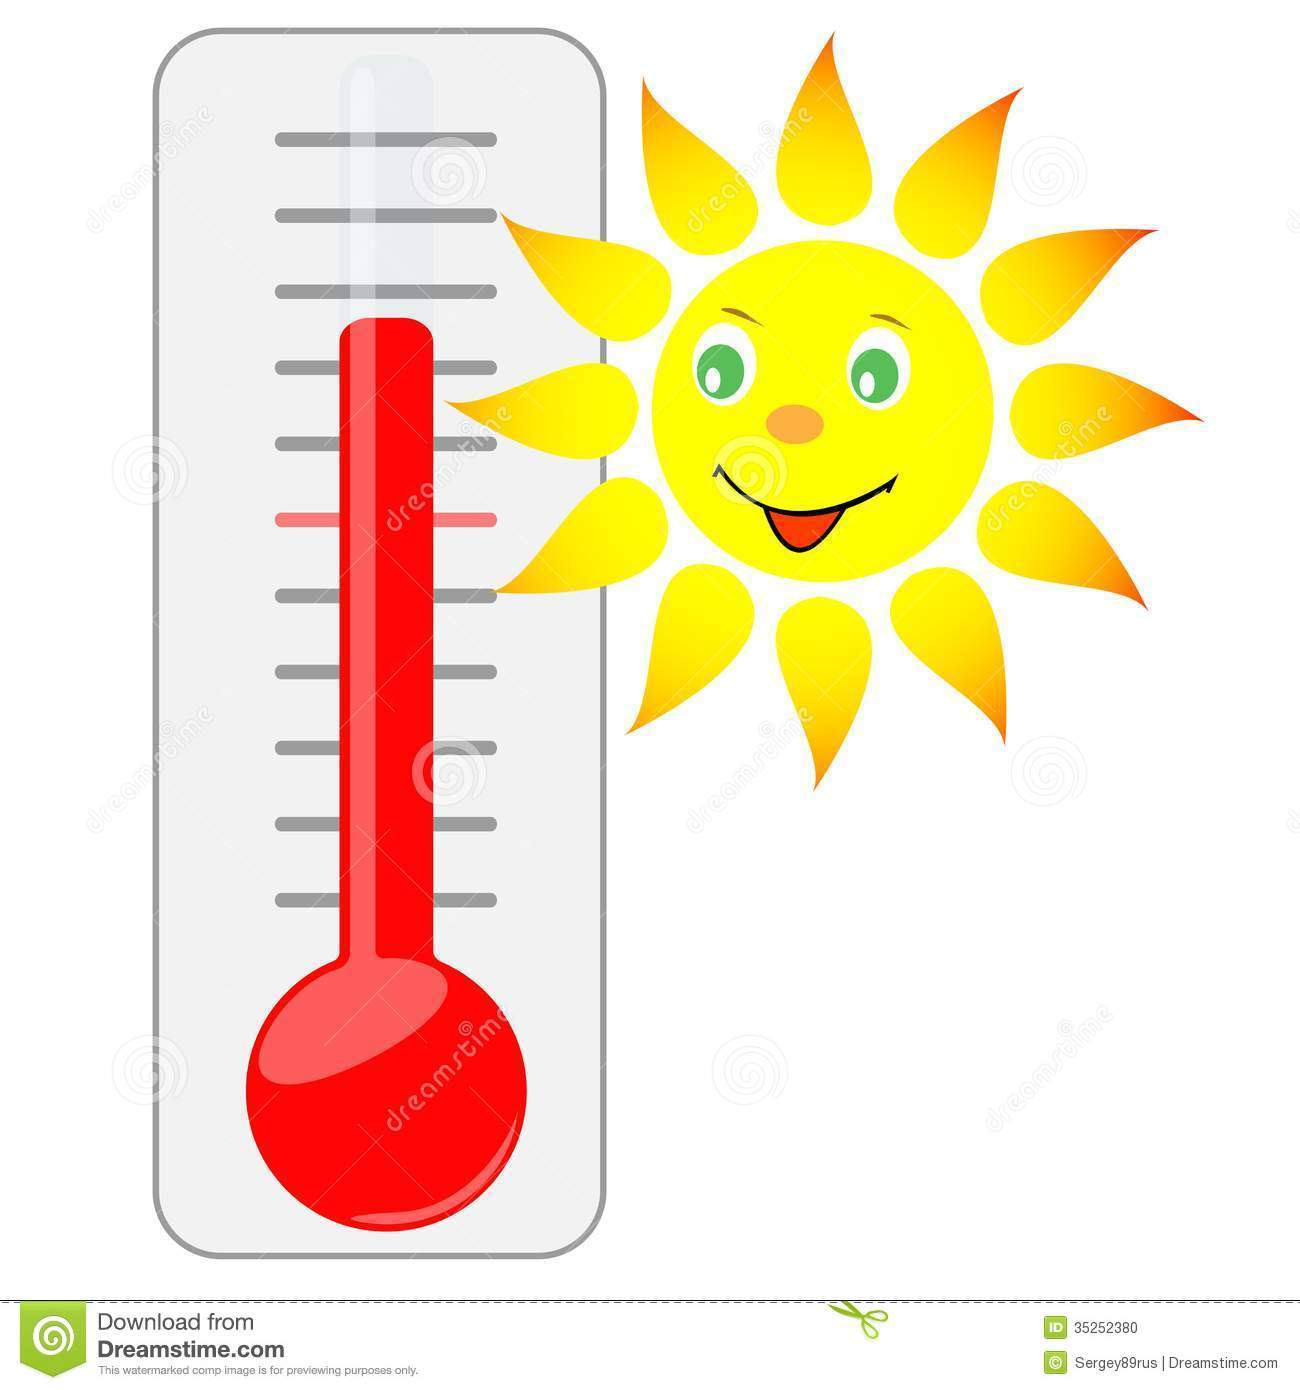 Thermometer bursting clipart 2 » Clipart Portal.